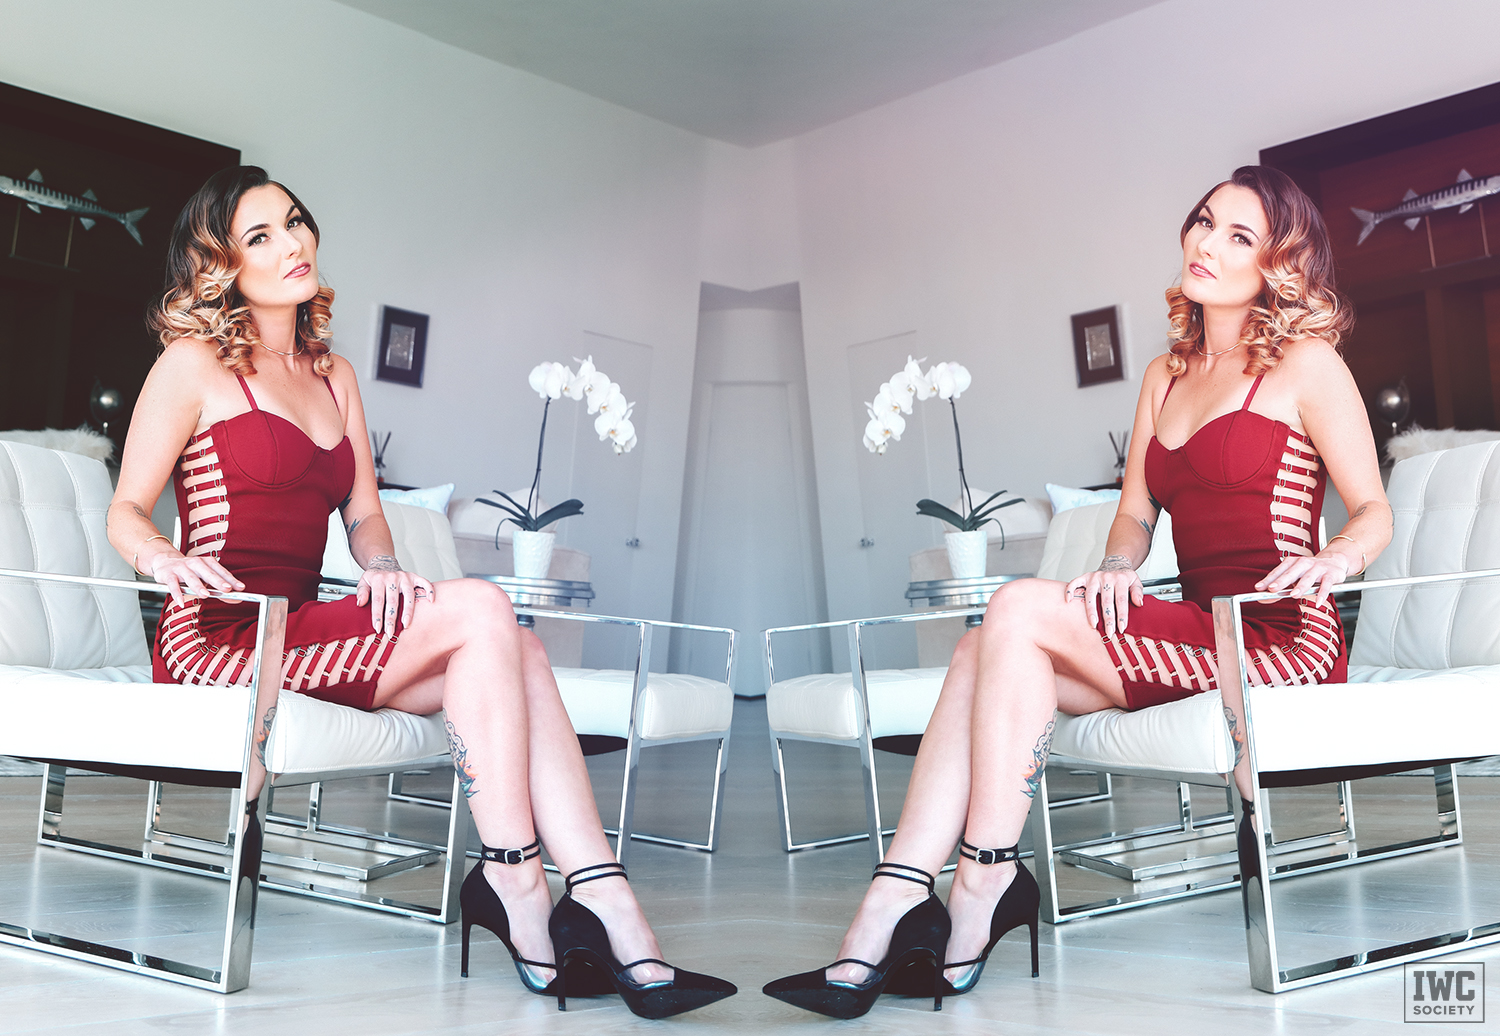 findomme goddess emerald wearing a red dress with mirror effect